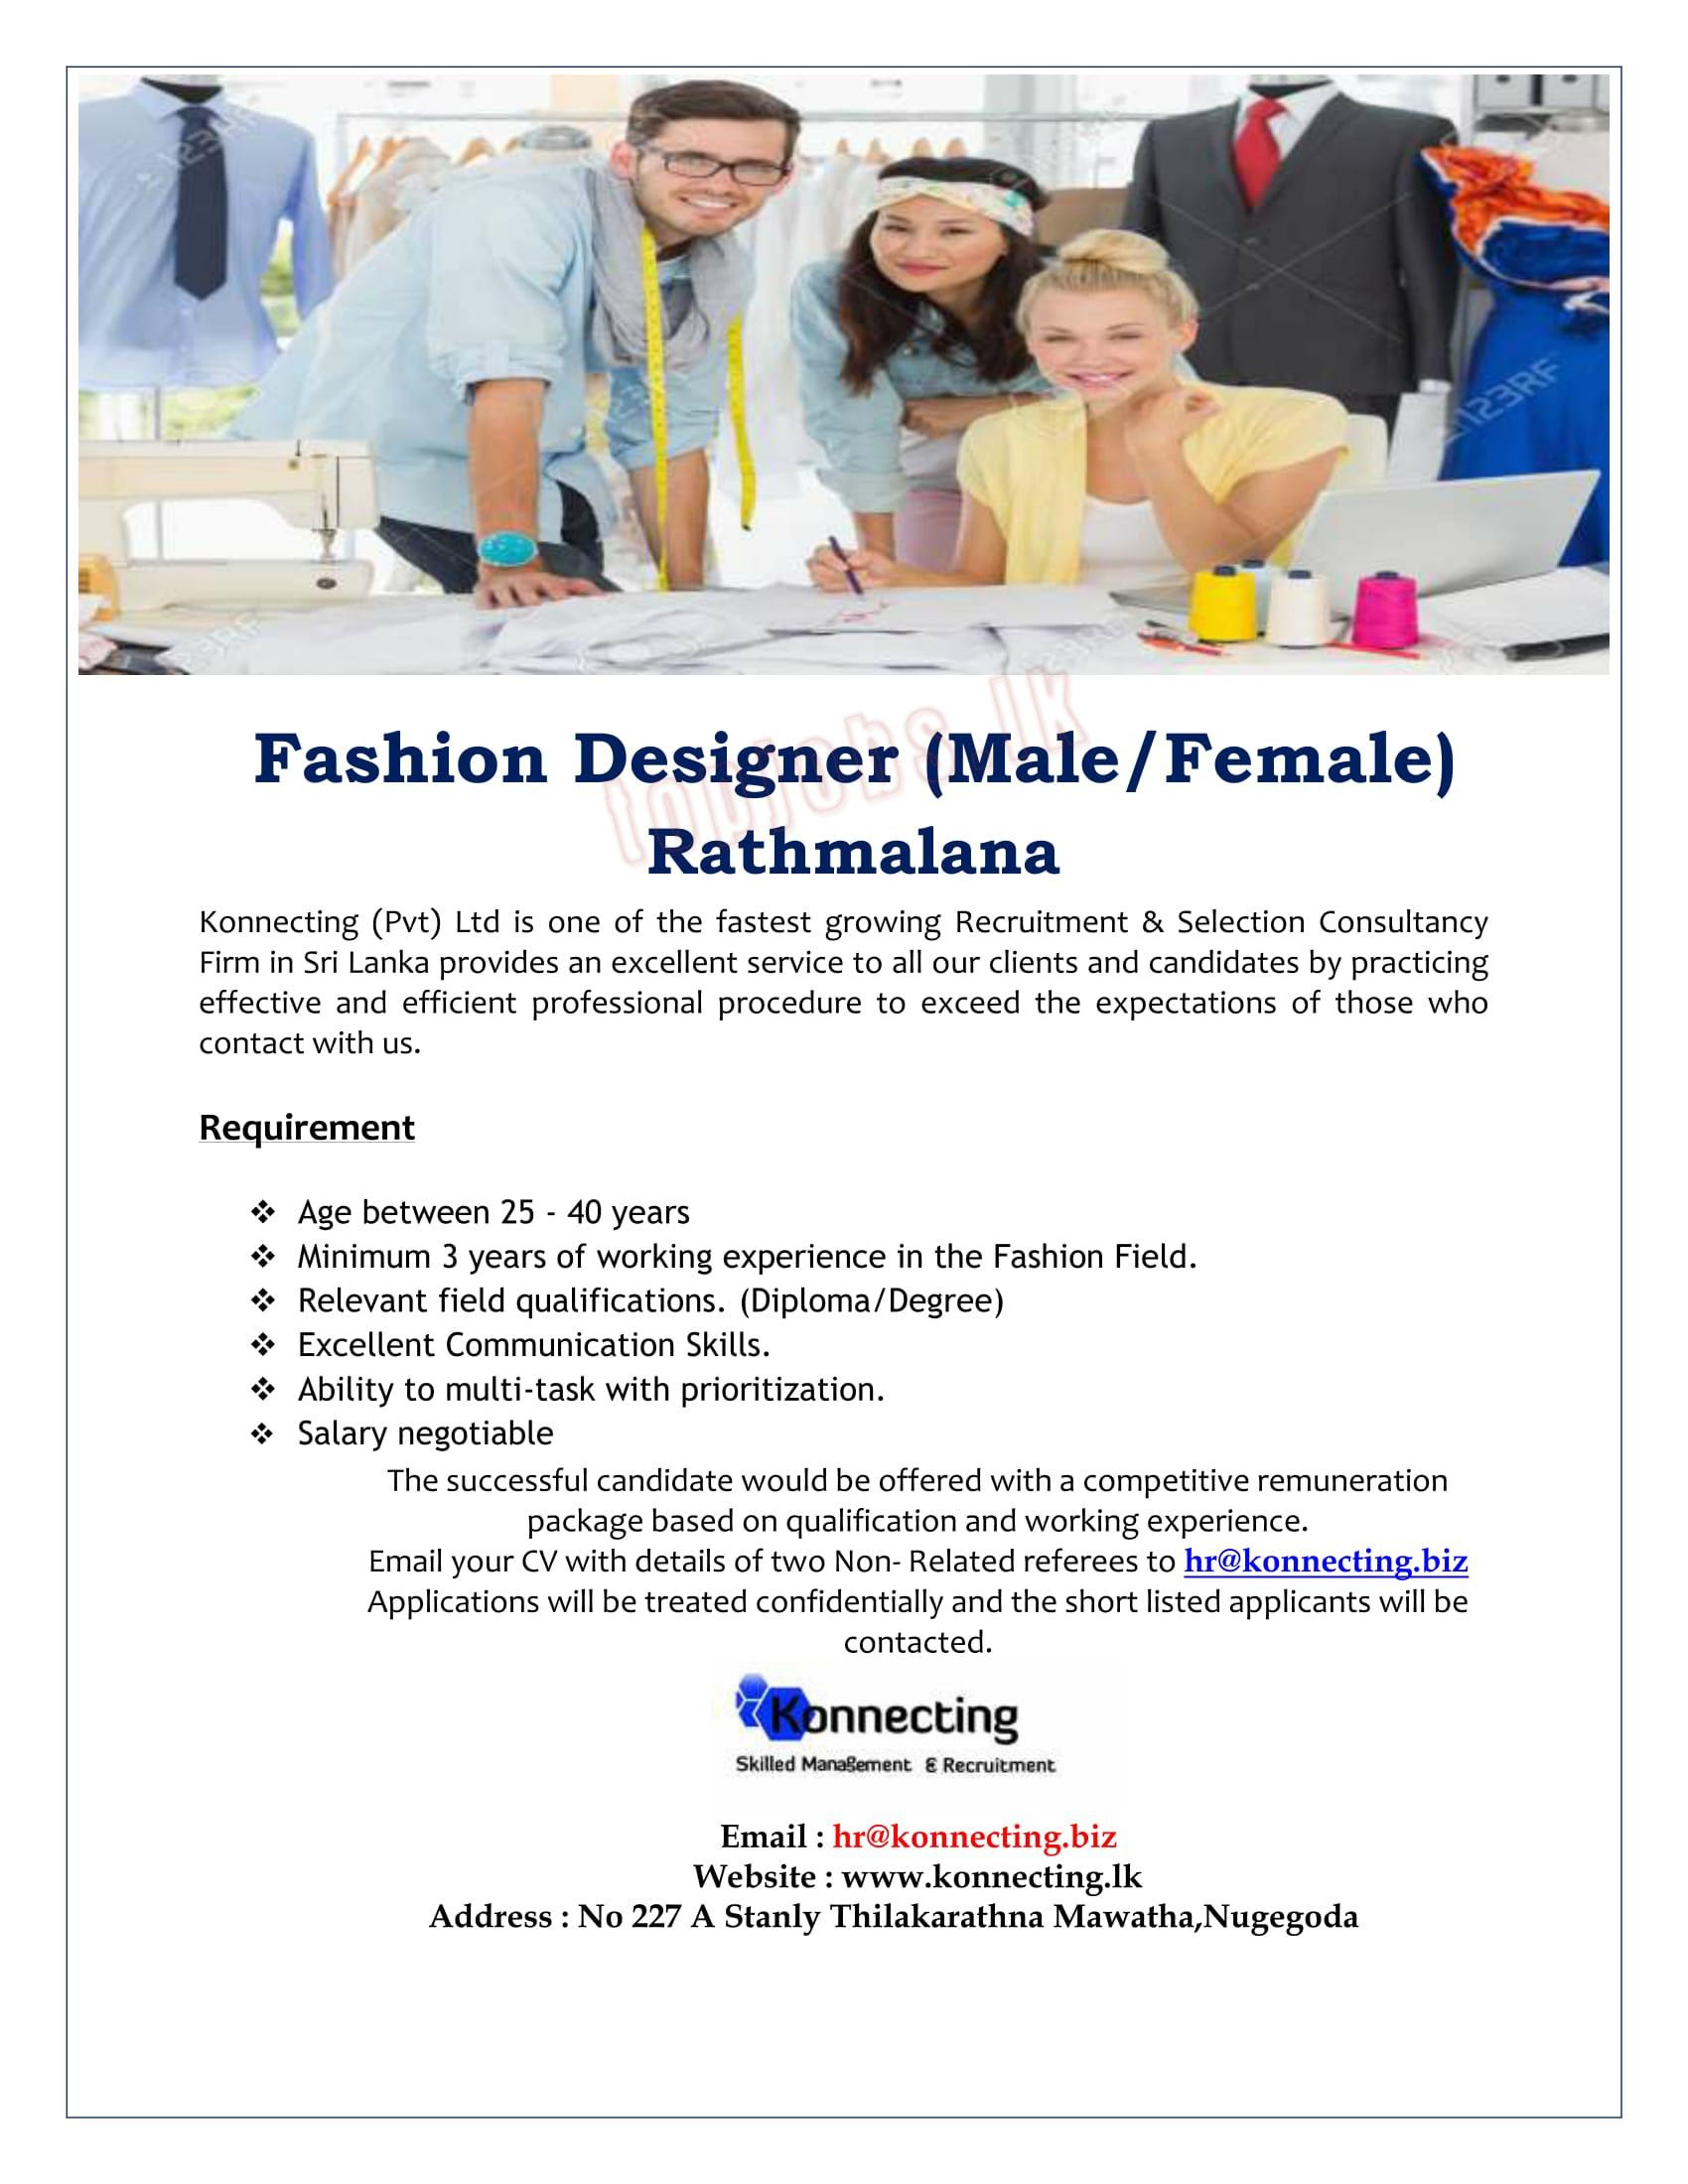 Fashion All The Time Job Requirements For Fashion Designer